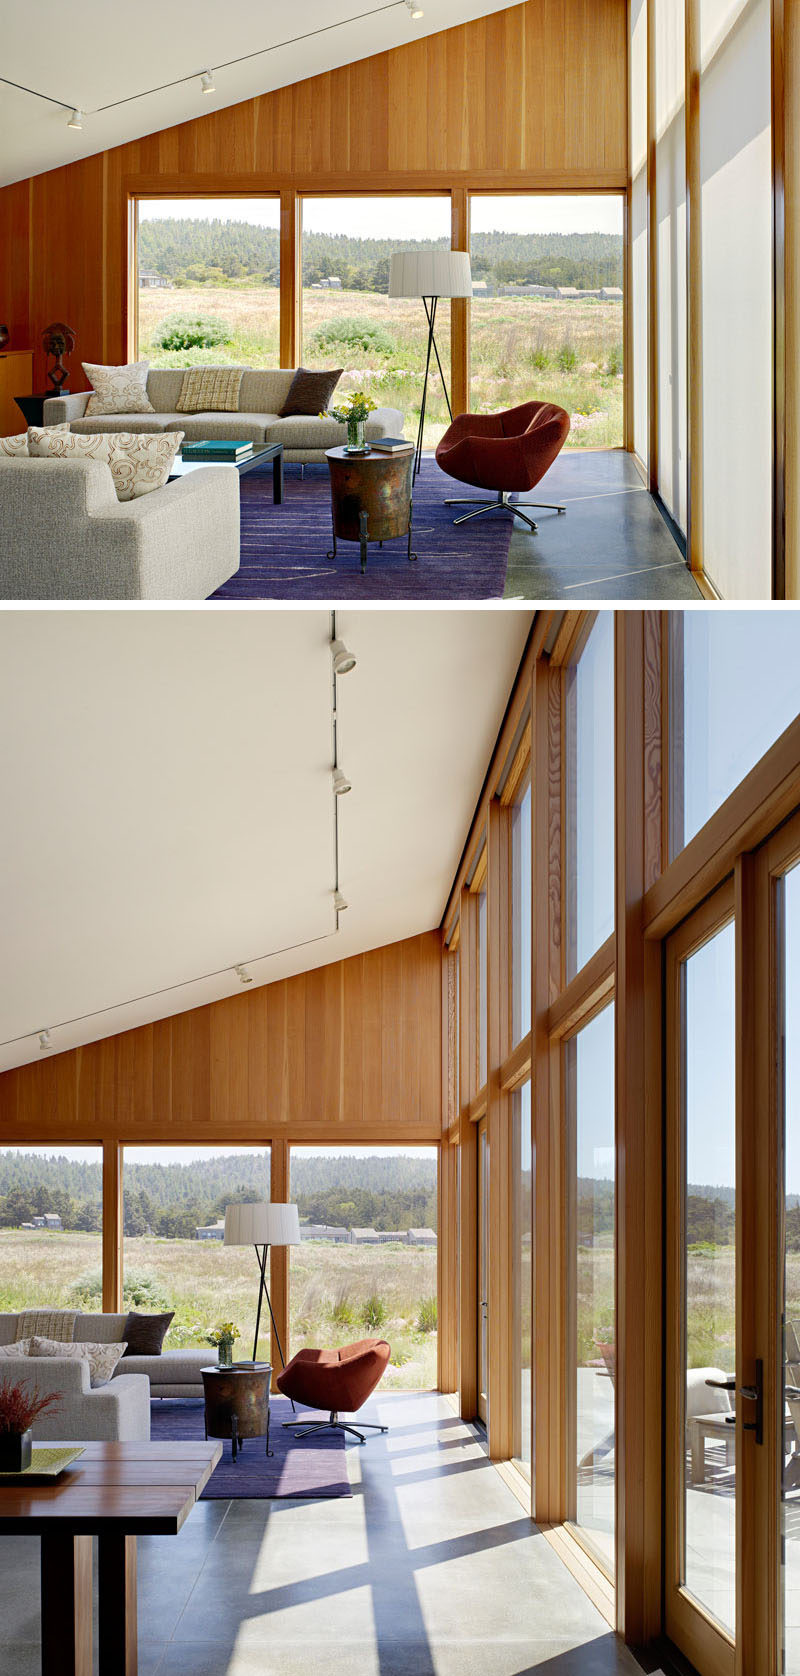 Large wood framed windows frame the views and fill the space with natural light.